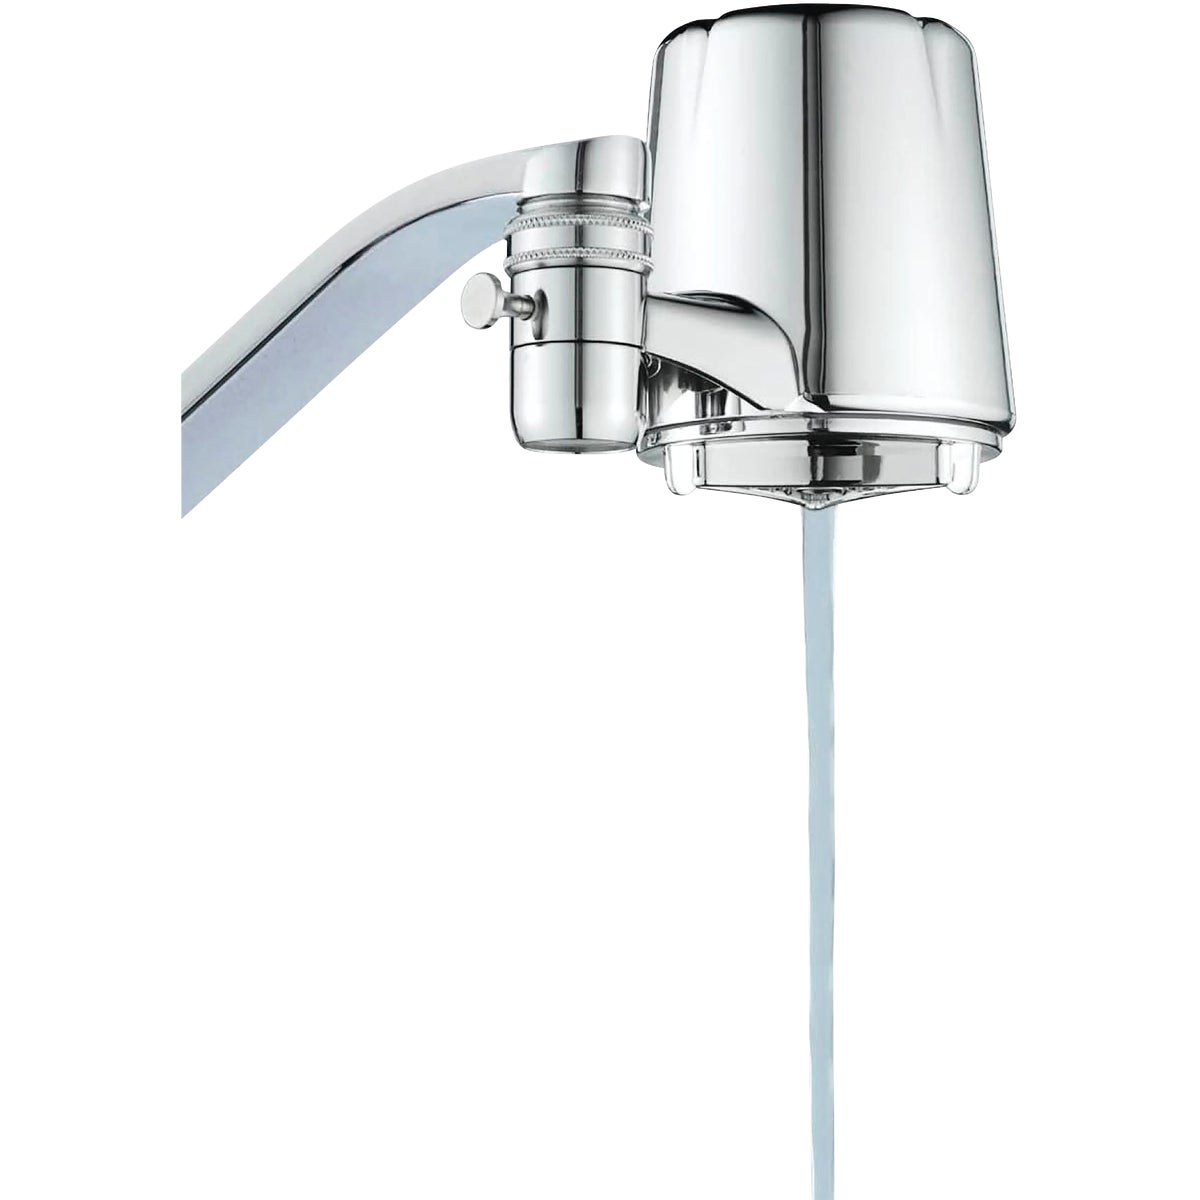 CHROME WATER FILTER